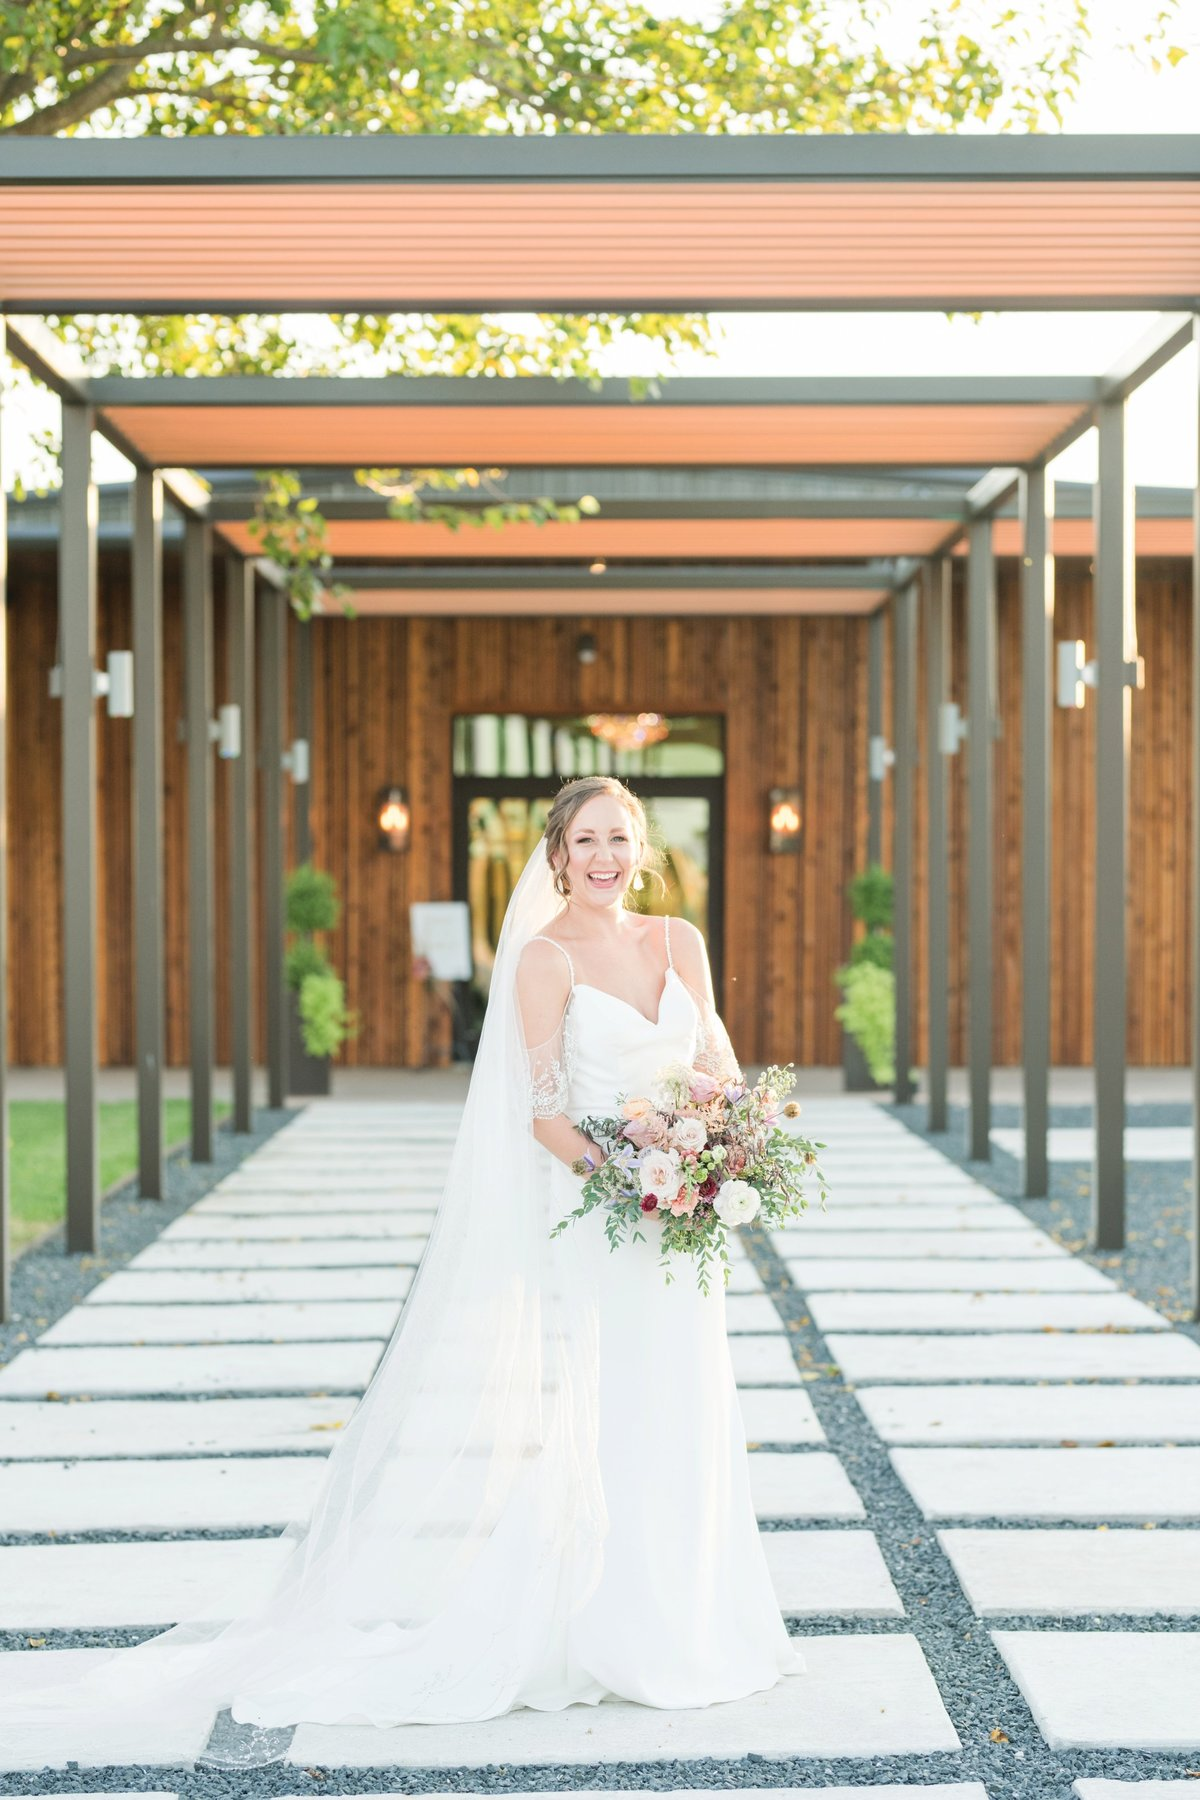 Celebrino Event Center Bridal Portraits